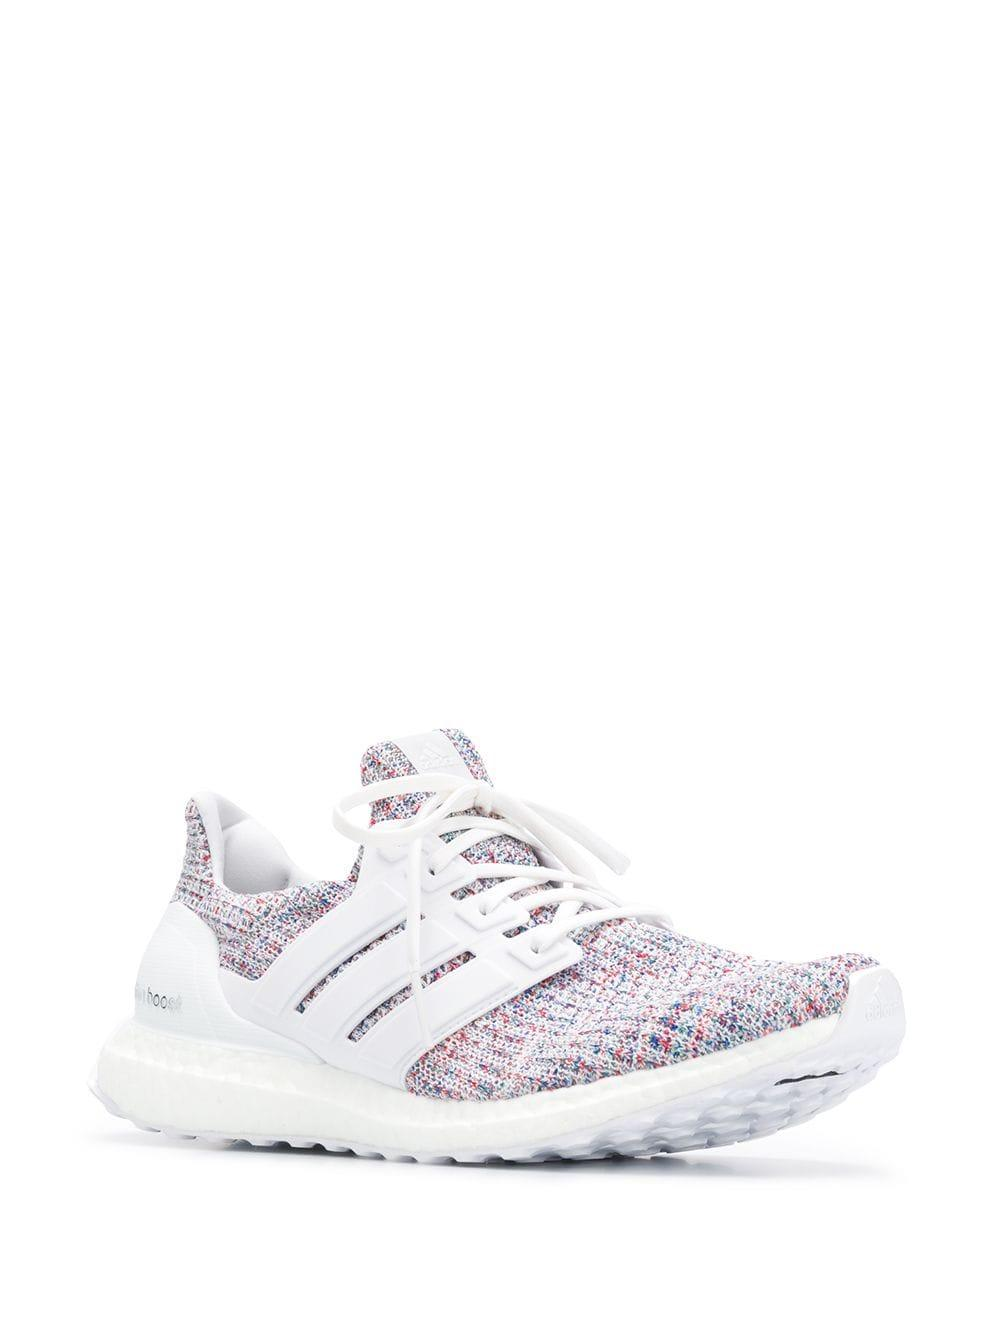 1f6029752fae1 Lyst - adidas Ultraboost Sneakers in White for Men